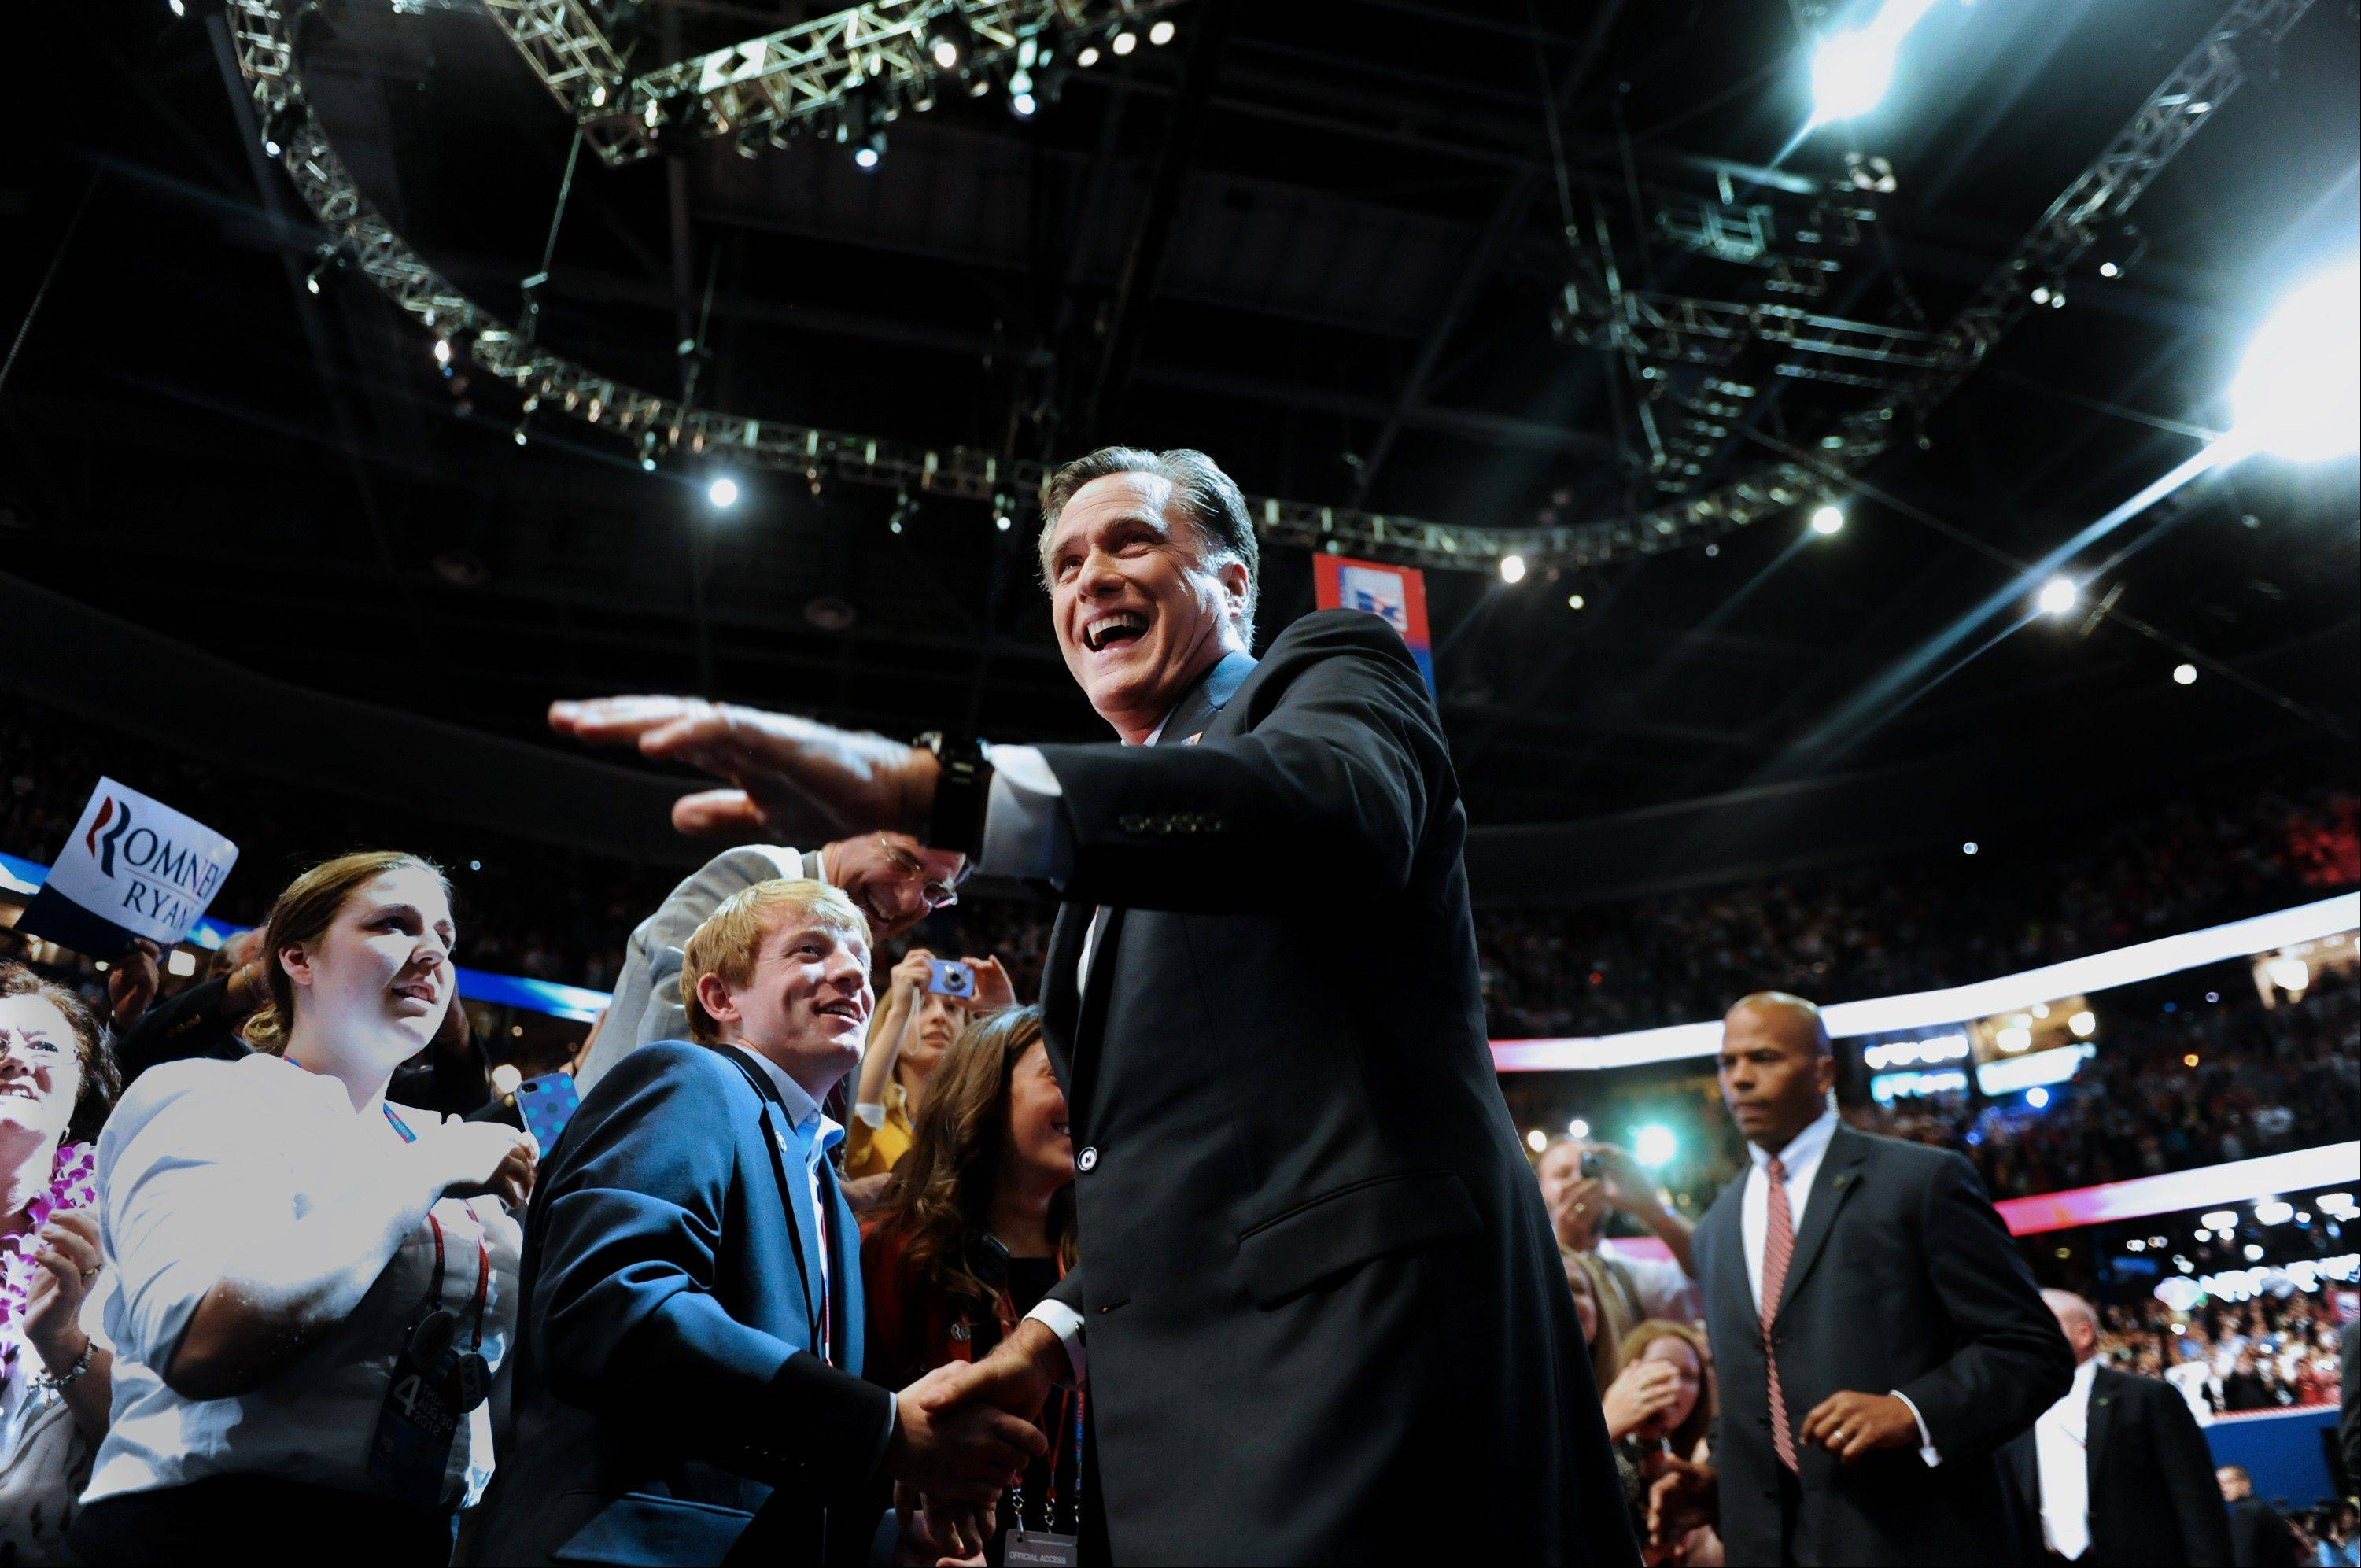 Mitt Romney, Republican presidential candidate, waves while greeting delegates before speaking at the Republican National Convention (RNC) in Tampa, Florida, U.S., on Thursday, Aug. 30, 2012. Romney, a wealthy former business executive who served as Massachusetts governor and as a bishop in the Mormon church, is under pressure to show undecided voters more personality and emotion in his convention speech tonight, even as fiscal conservatives in his own party say he must more clearly define his plans for reining in the deficit and improving the economy.